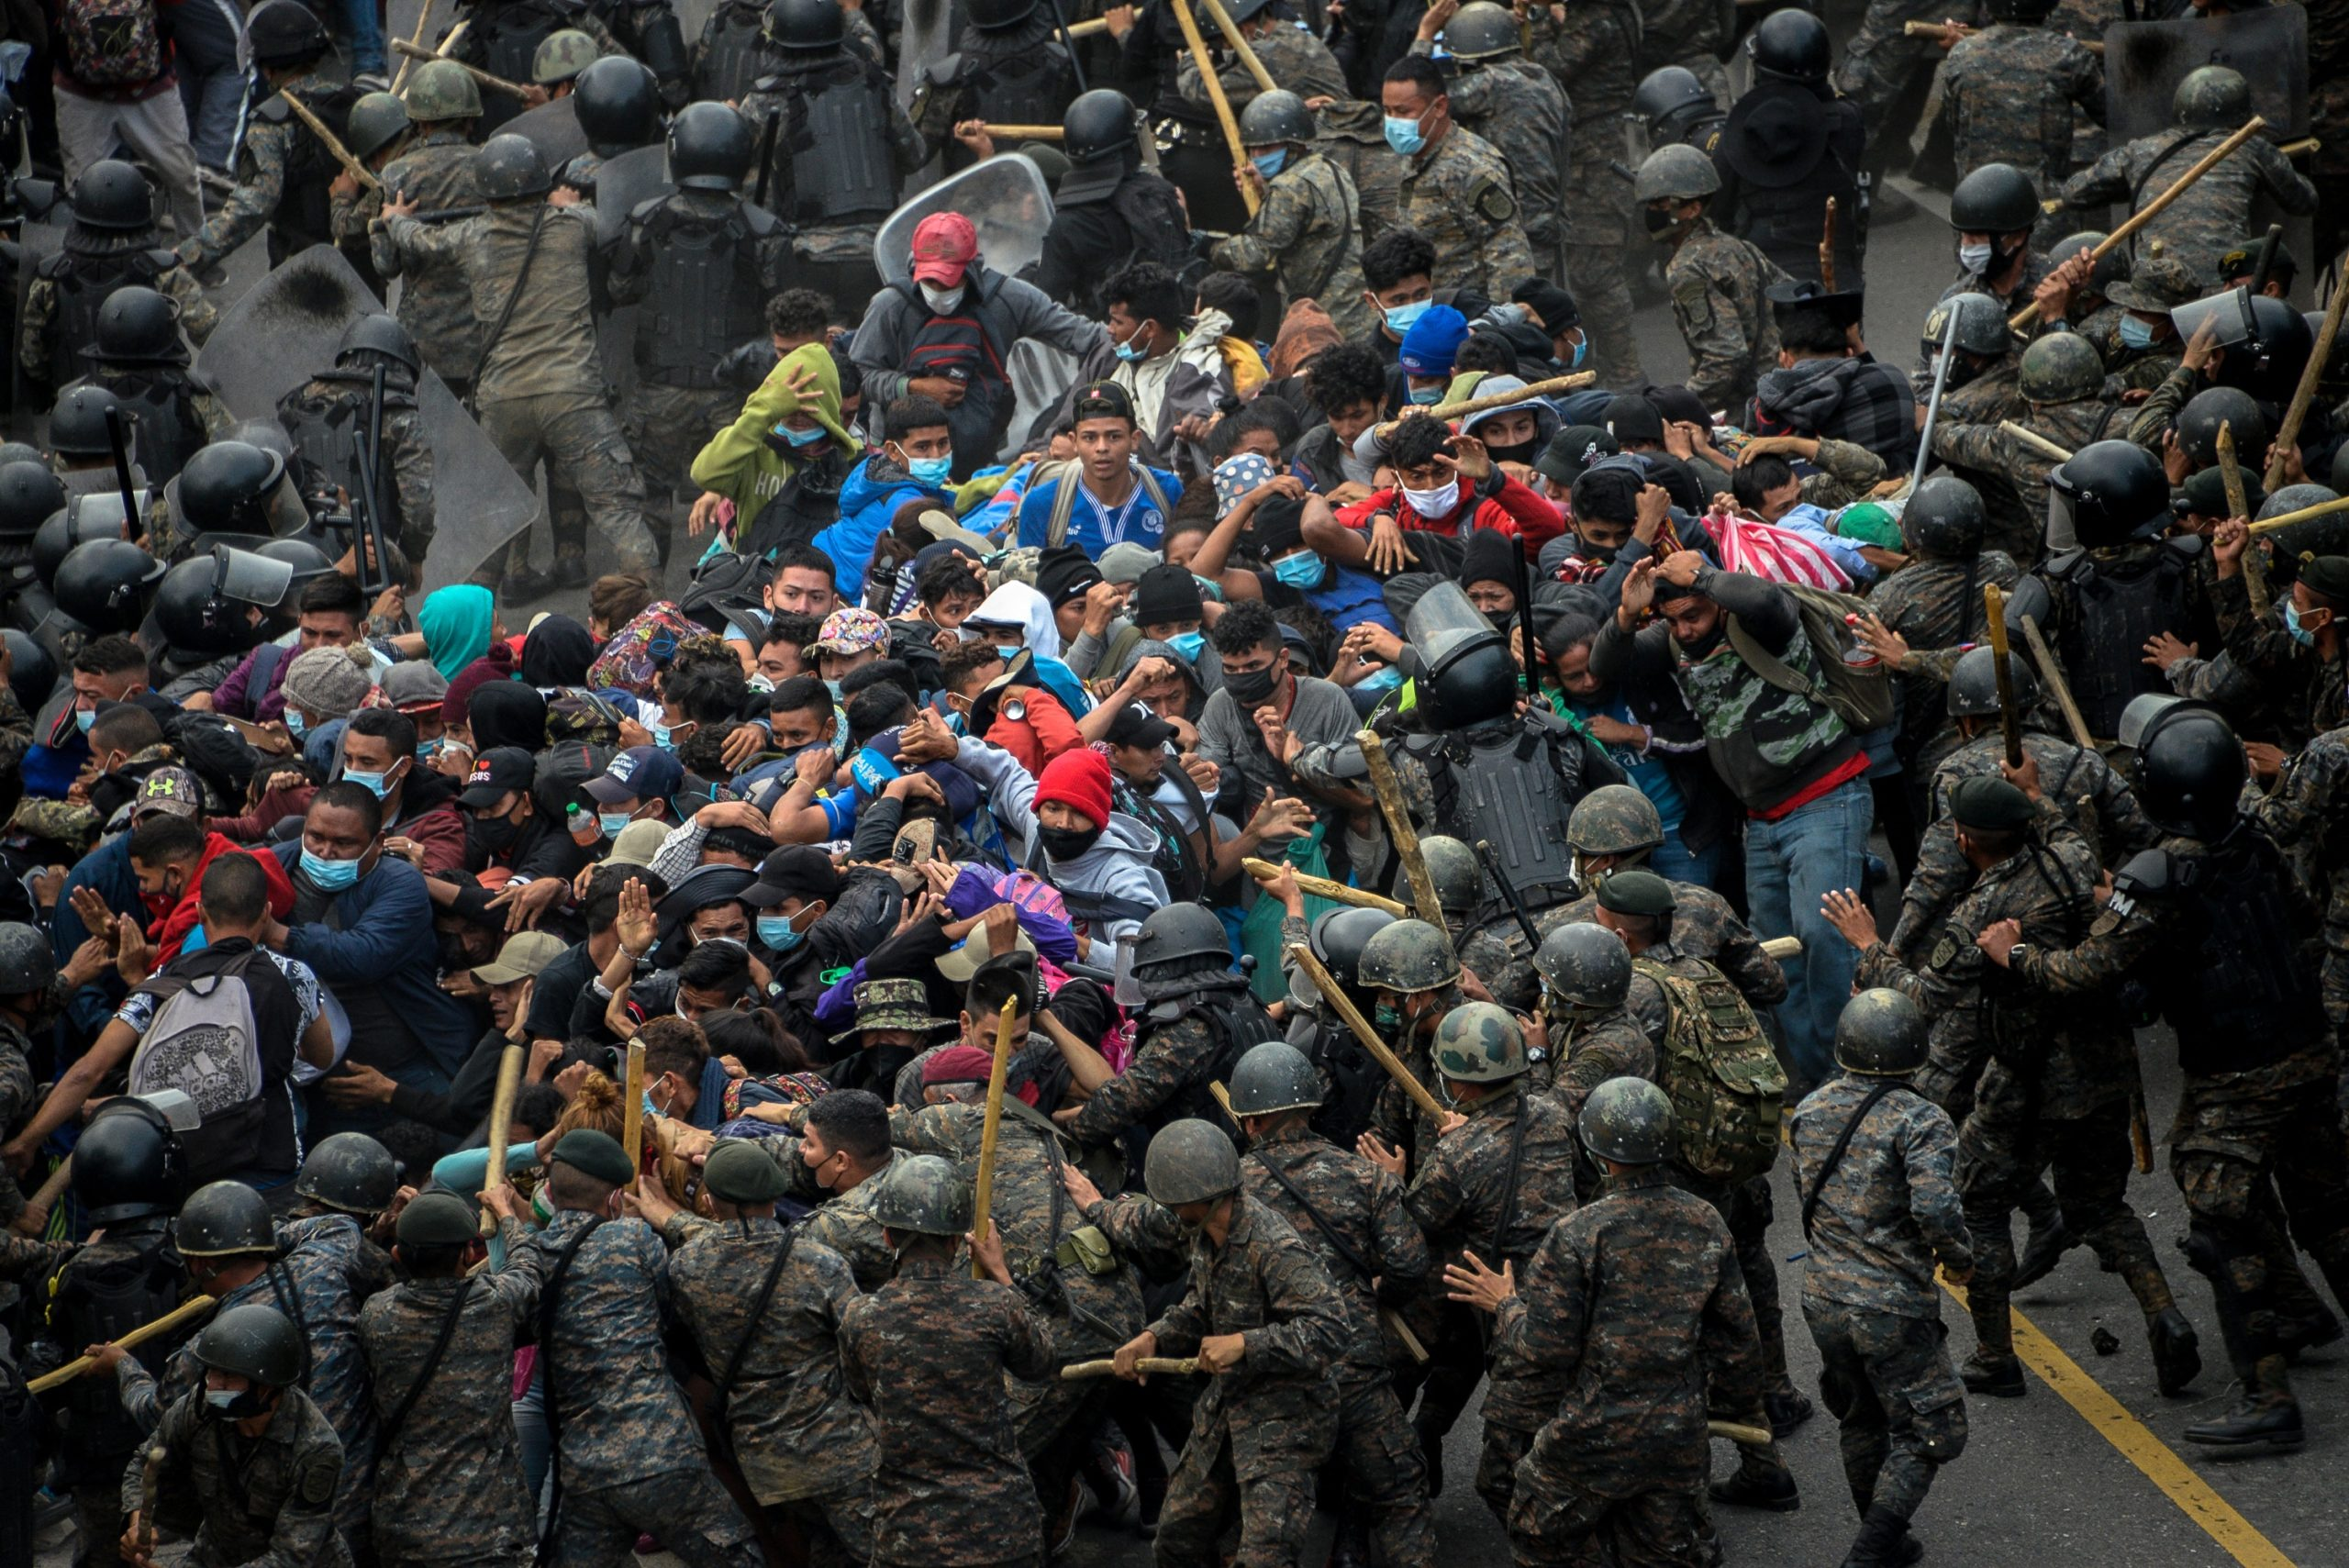 TOPSHOT - Honduran migrants, part of a caravan heading to the United States, clash with Guatemalan security forces in Vado Hondo, Guatemala on January 17, 2021. - Guatemalan police fired tear gas Sunday to try to disperse a caravan of thousands of migrants heading toward the United States. (Photo by Johan ORDONEZ / AFP) (Photo by JOHAN ORDONEZ/AFP via Getty Images)